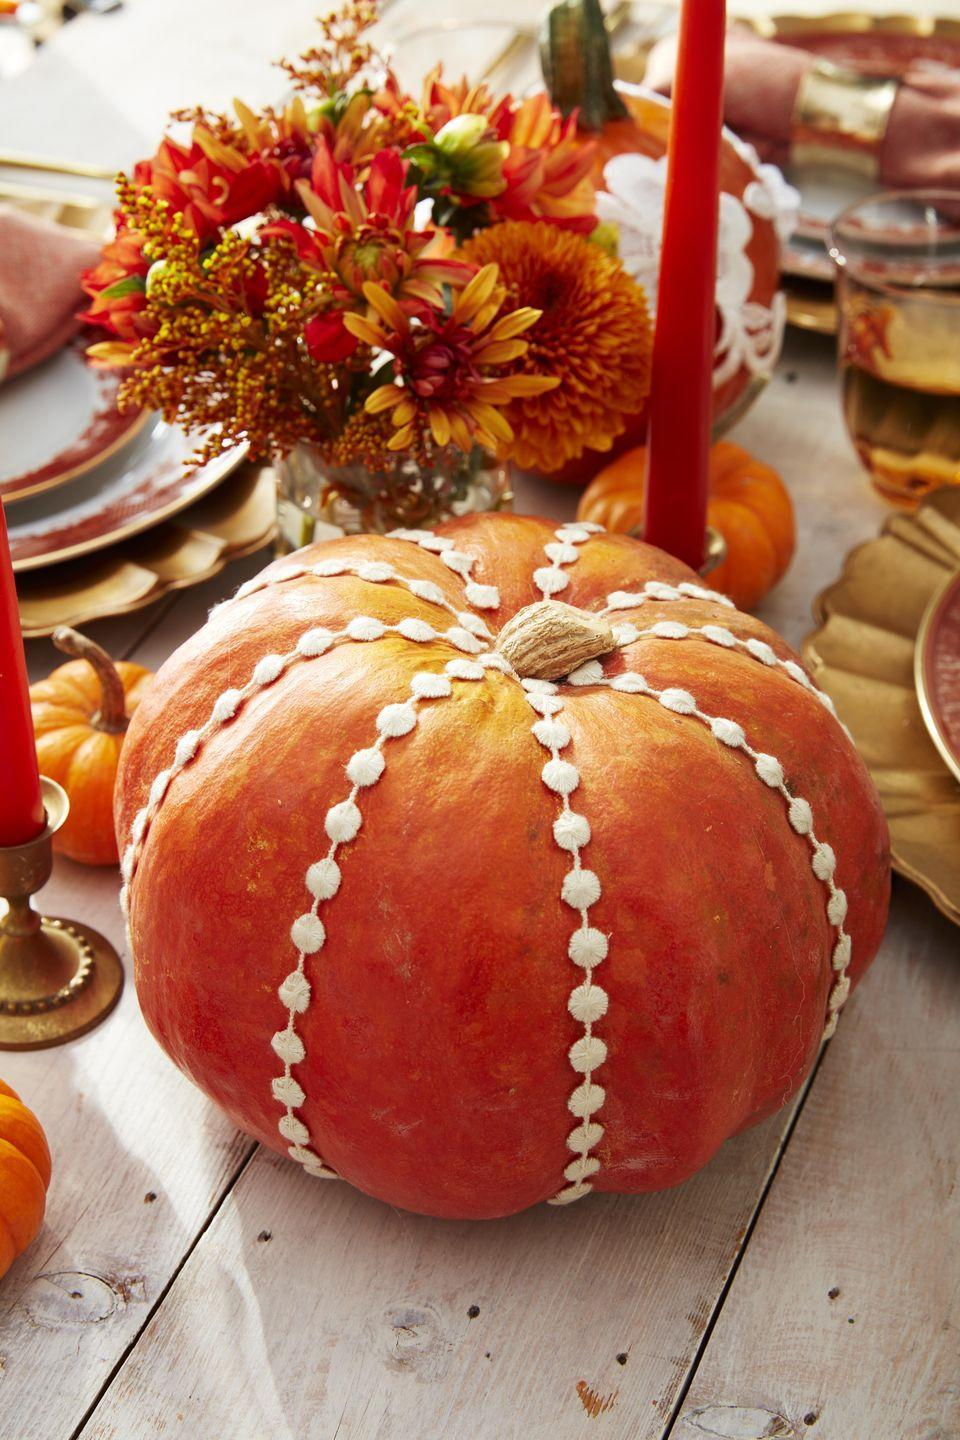 "<p>Shop the sewing section to create this sweet pumpkin. Simply attach lengths of sewing trim to the top and bottom of a pumpkin, allowing it to sit in the pumpkin's natural grooves, with hot-glue</p><p><a class=""link rapid-noclick-resp"" href=""https://www.amazon.com/Altotux-inches-White-Circle-Venice/dp/B00MOWFLW4/ref=sr_1_3?linkCode=ogi&tag=syn-yahoo-20&ascsubtag=%5Bartid%7C10050.g.2063%5Bsrc%7Cyahoo-us"" rel=""nofollow noopener"" target=""_blank"" data-ylk=""slk:Shop Sewing Trim"">Shop Sewing Trim</a></p>"